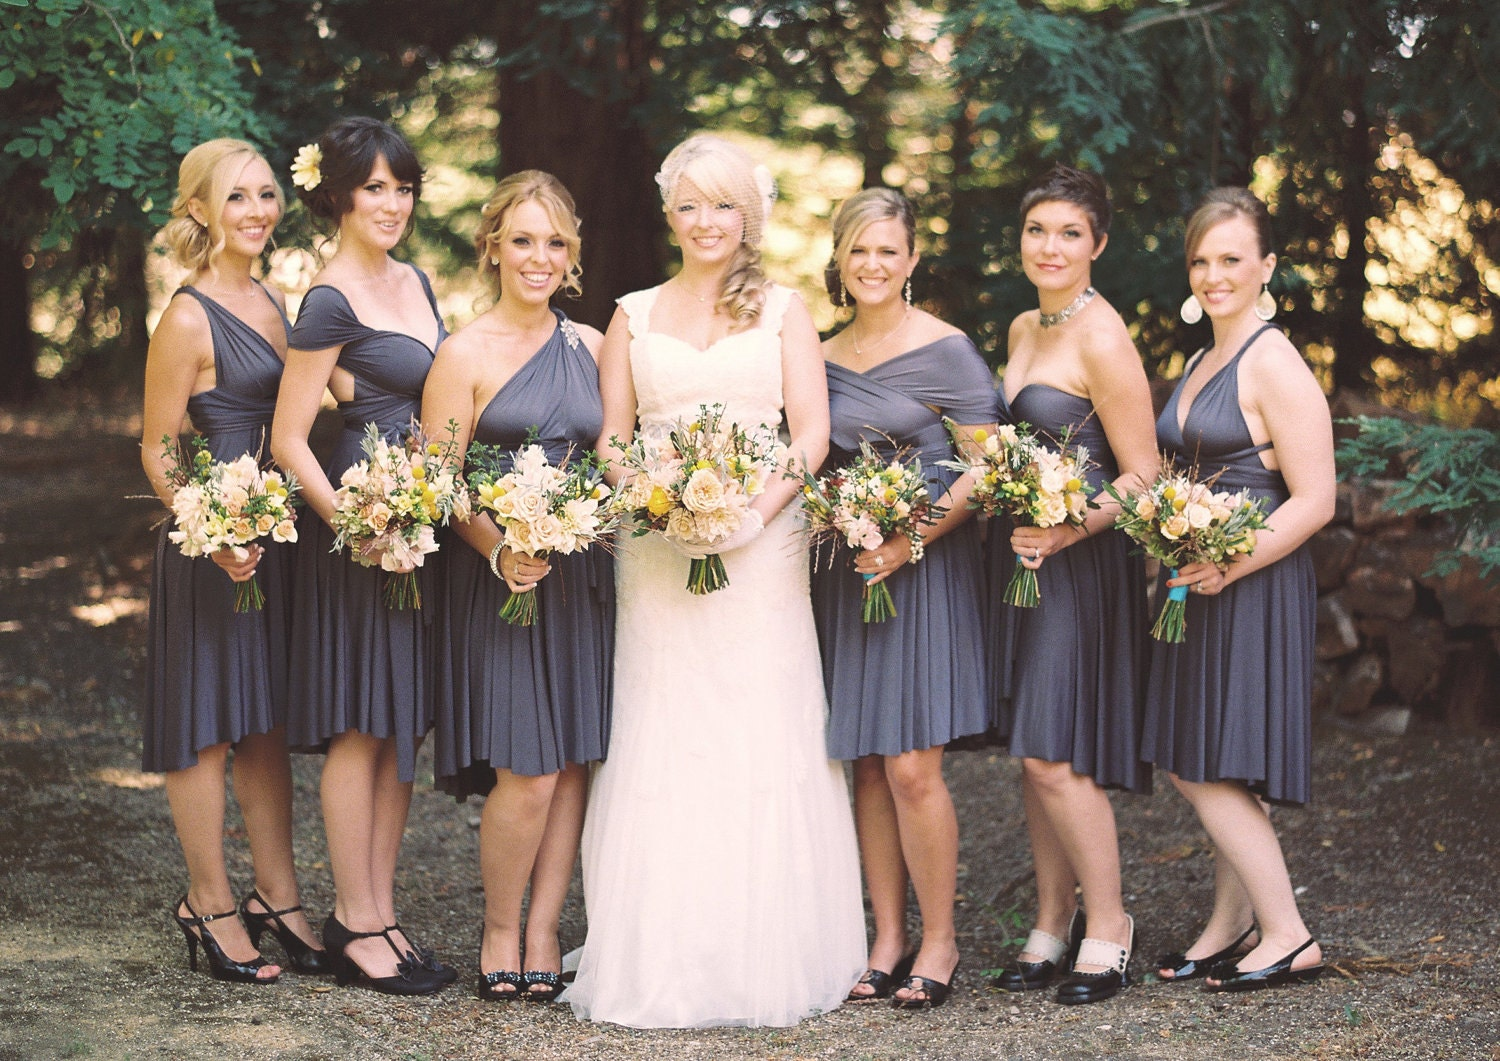 Bridesmaid dress grey vosoi collection of gray bridesmaid dresses 35 best grey bridesmaid ombrellifo Image collections